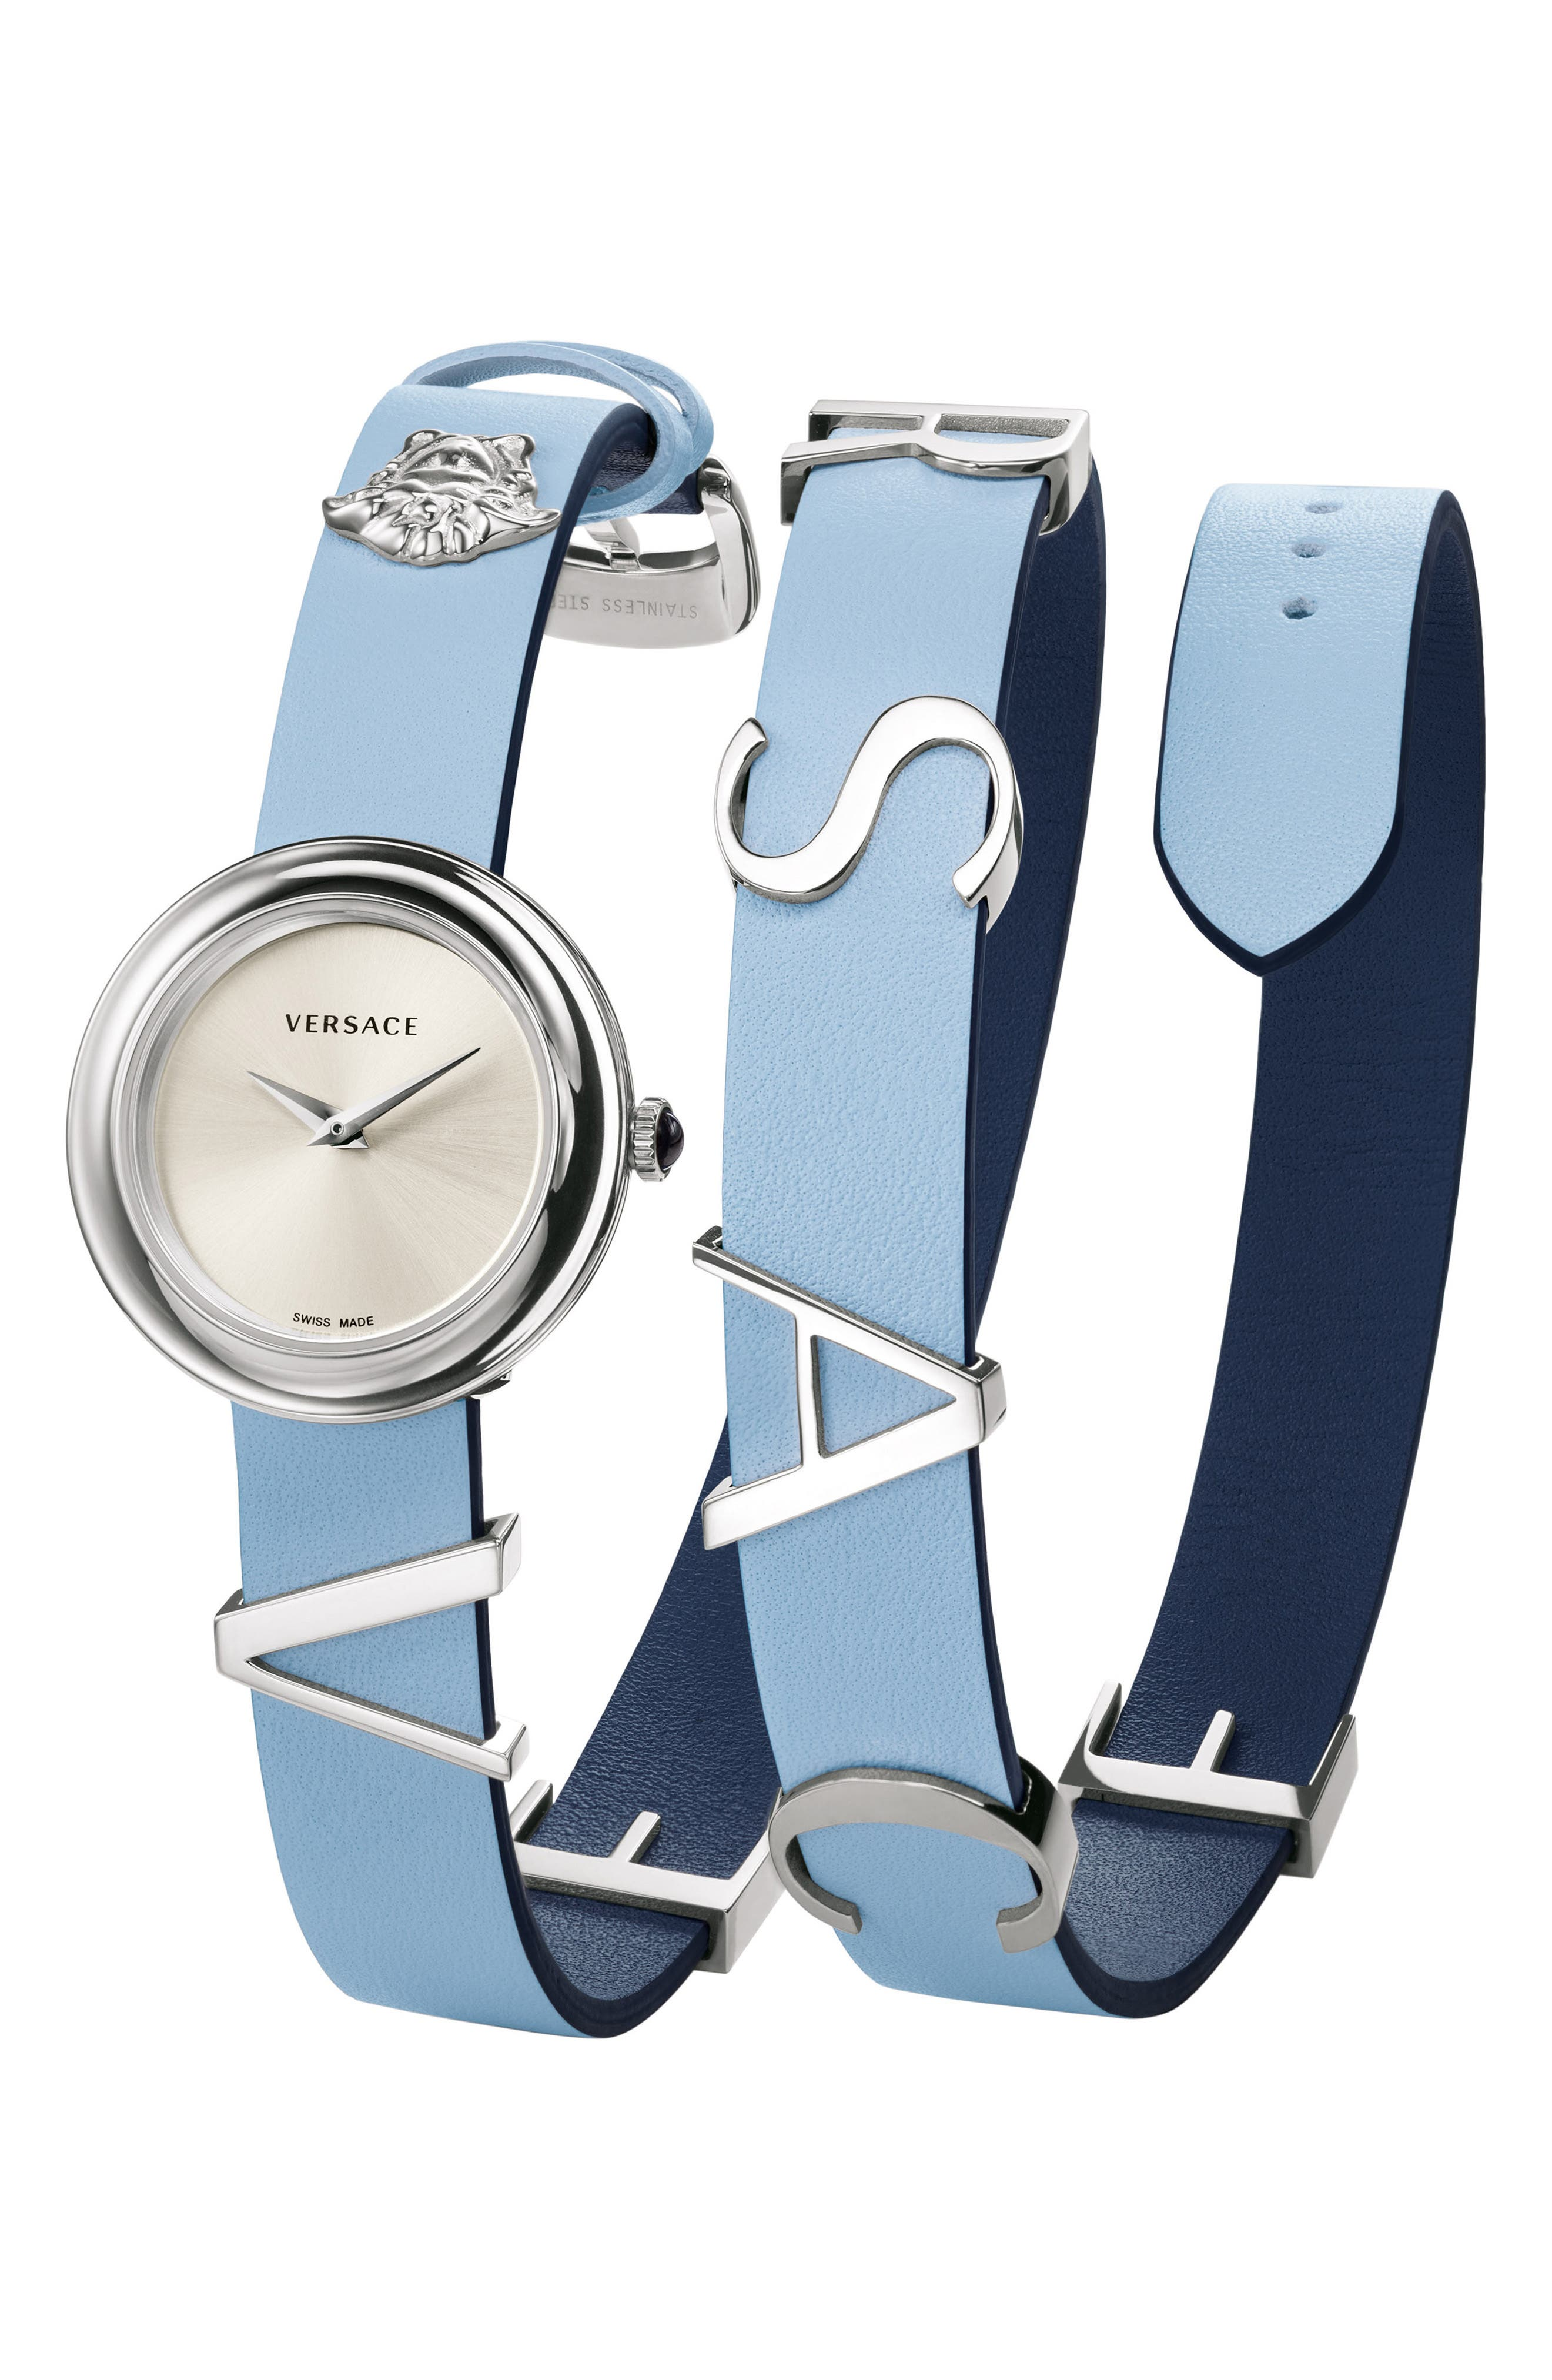 VERSACE, V-Flare Double Wrap Leather Strap Watch, 28mm, Main thumbnail 1, color, BLUE/ SILVER/ GOLD